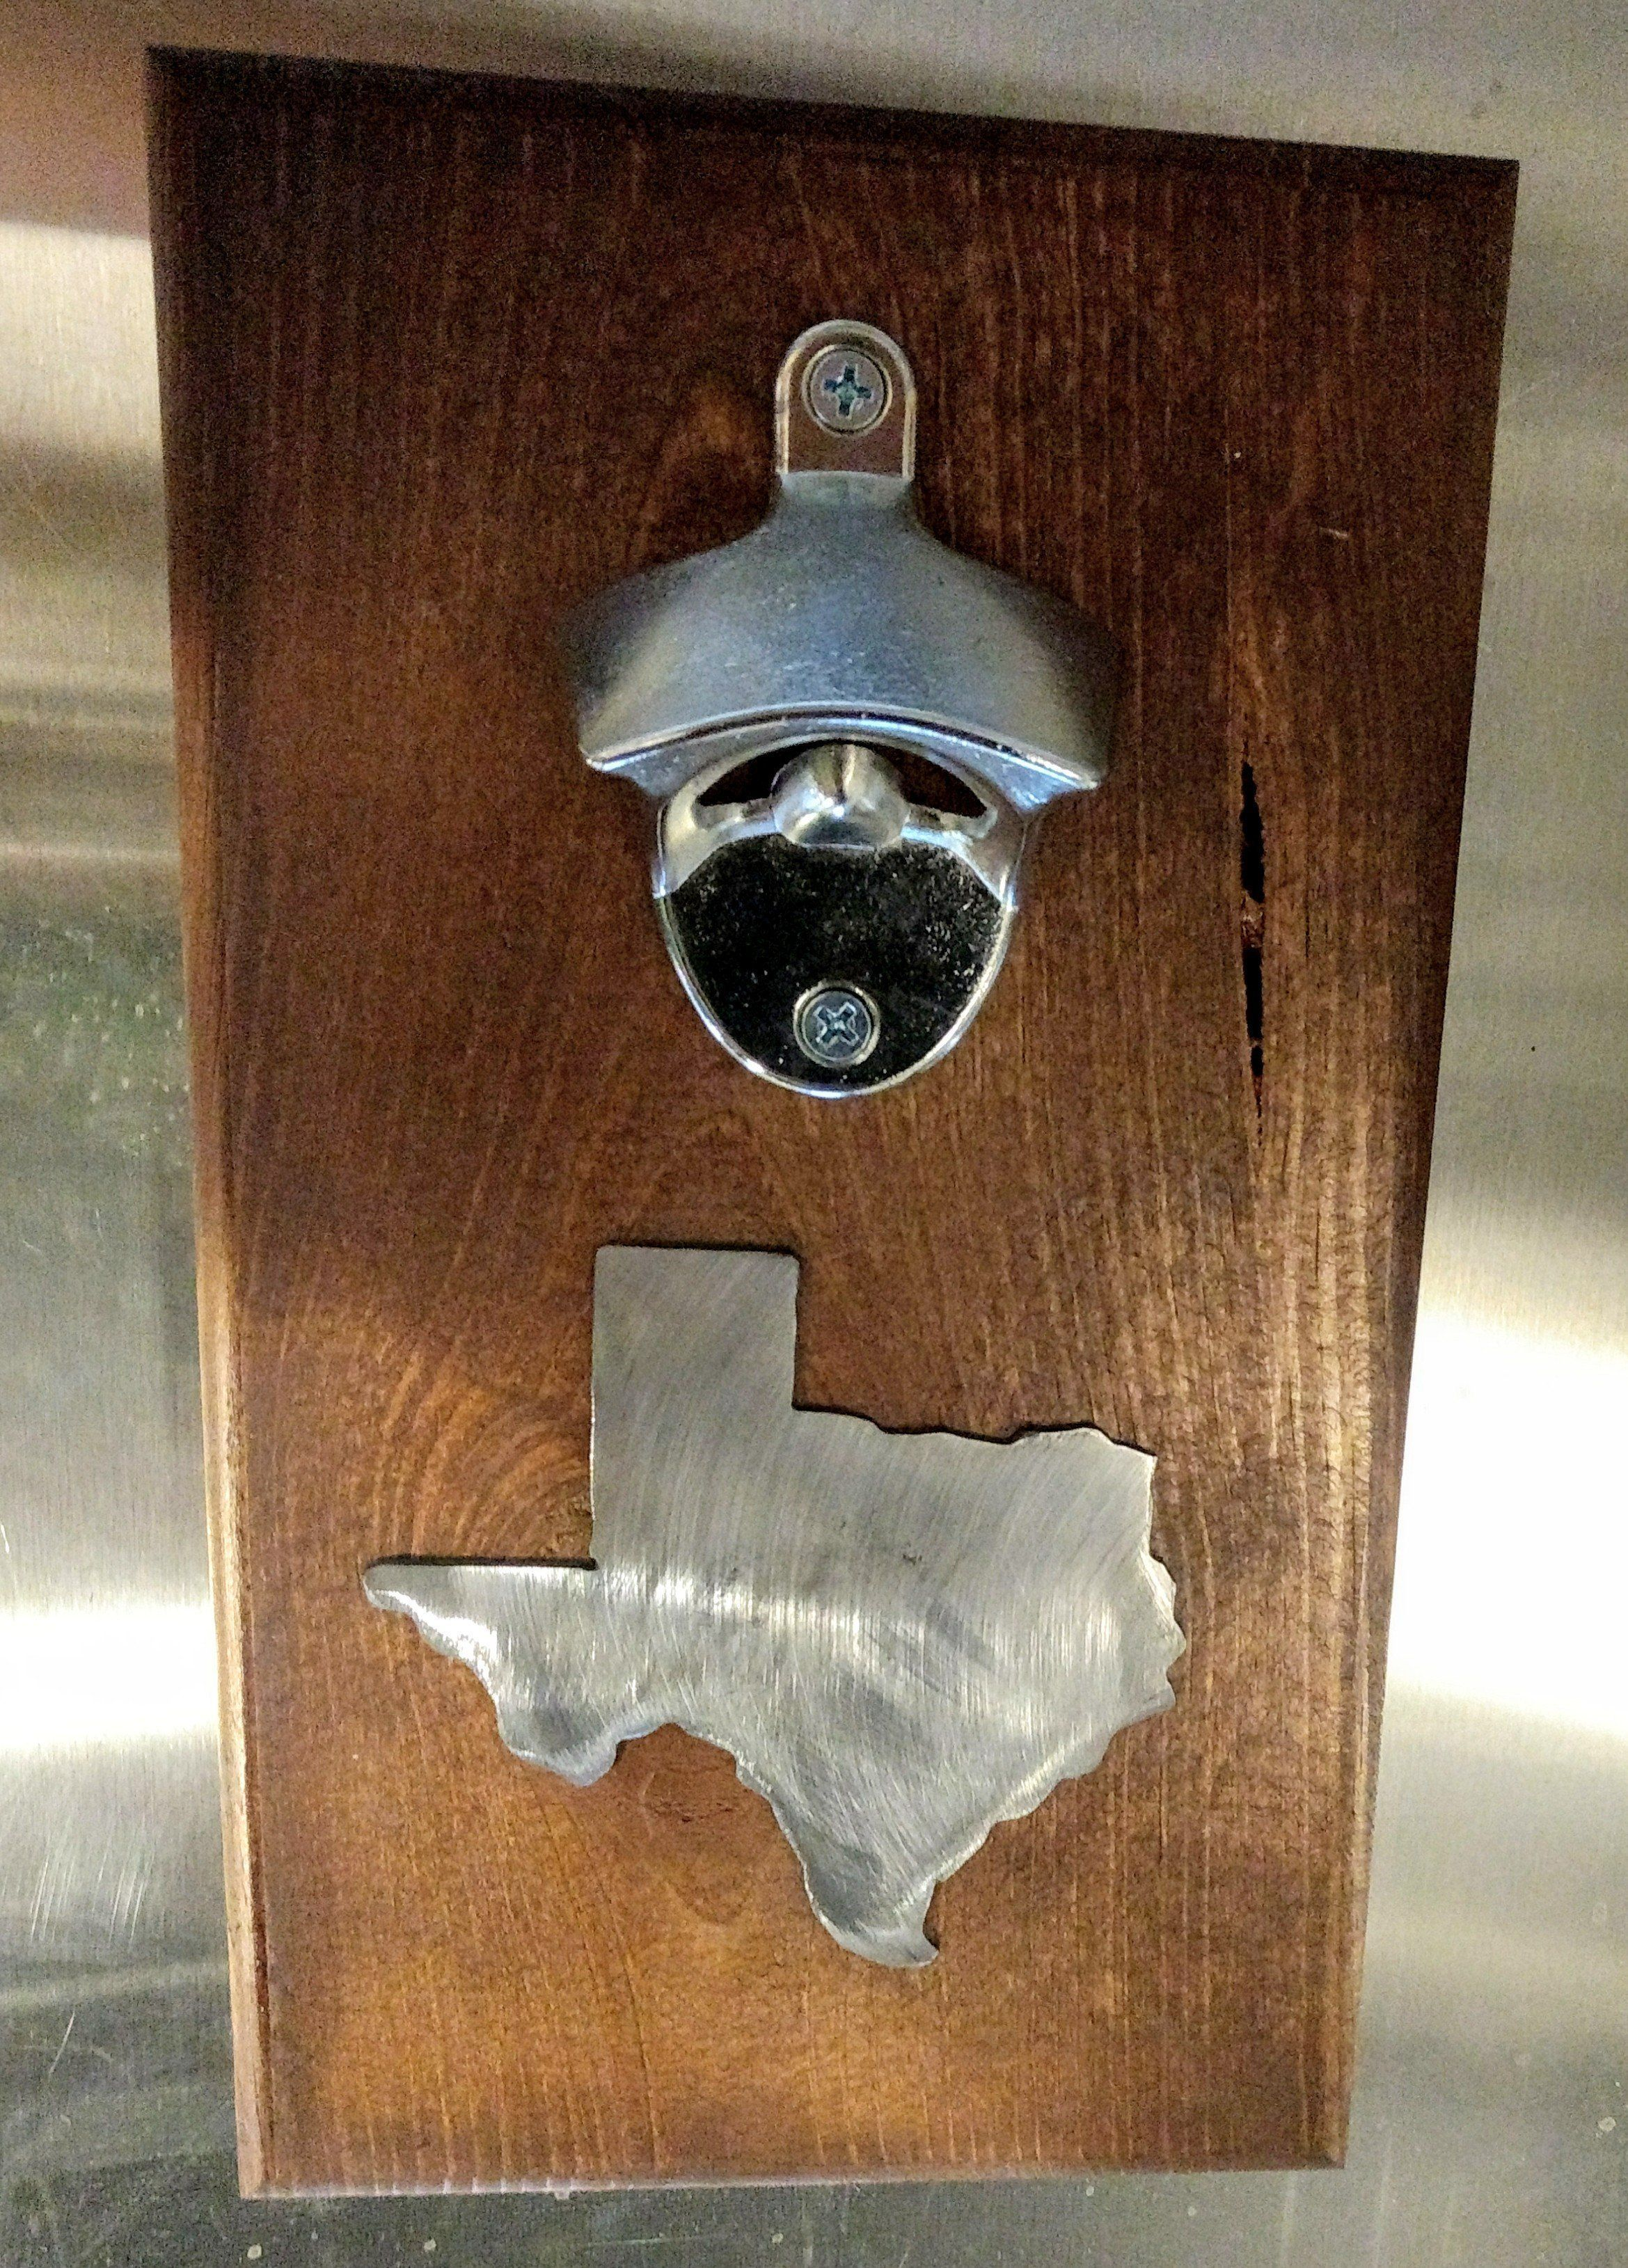 Texas Bottle Opener This or that questions, Cardboard